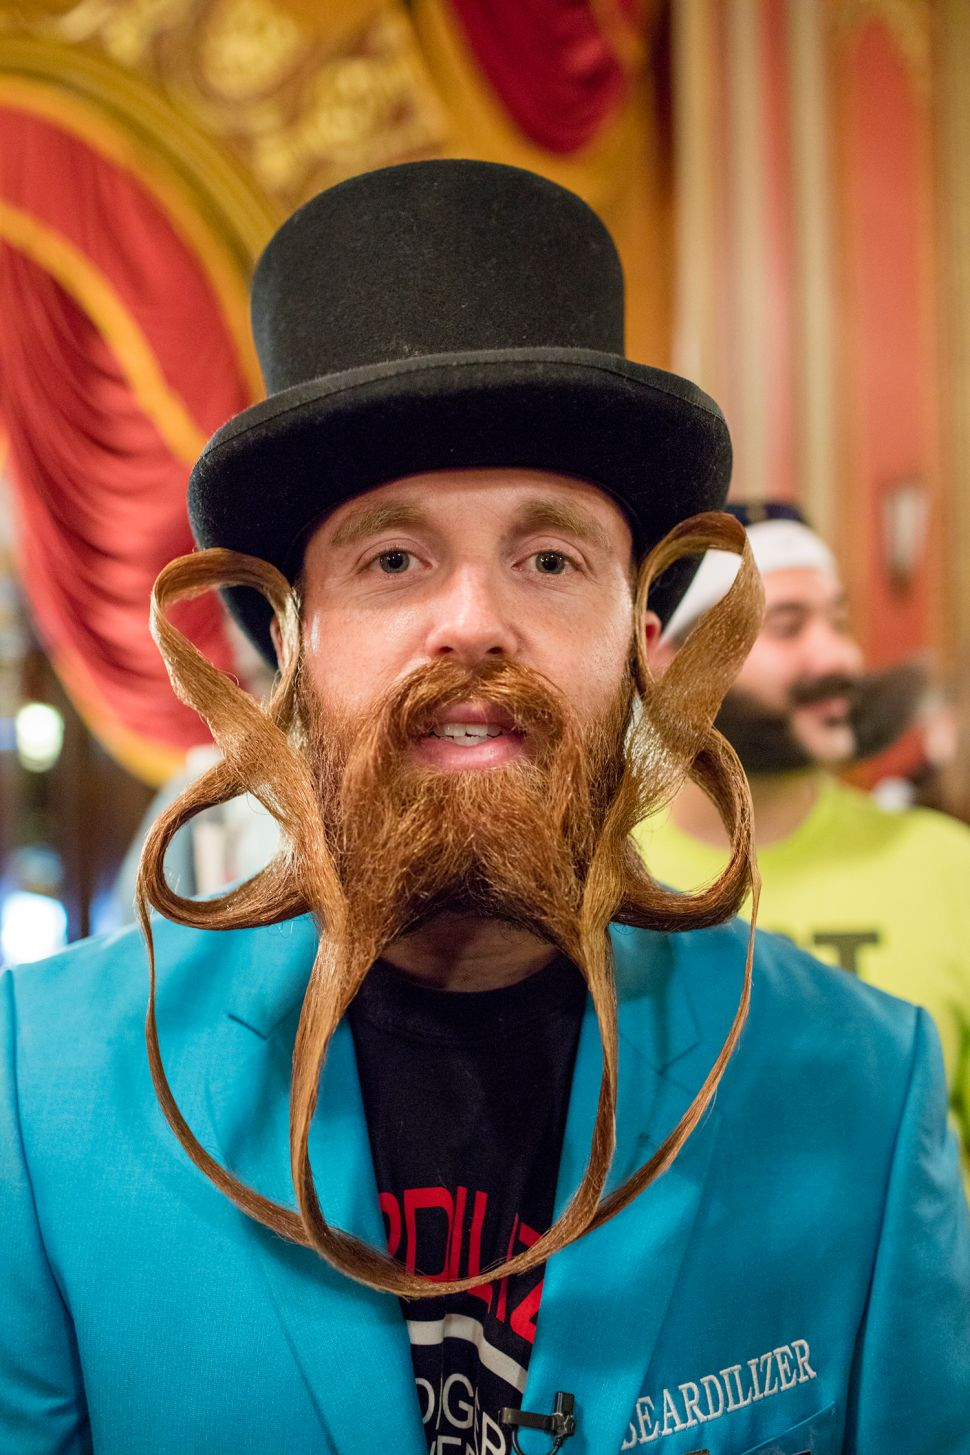 In Hirsute Pursuit: Behind the Scenes at the National Beard and Moustache Competition